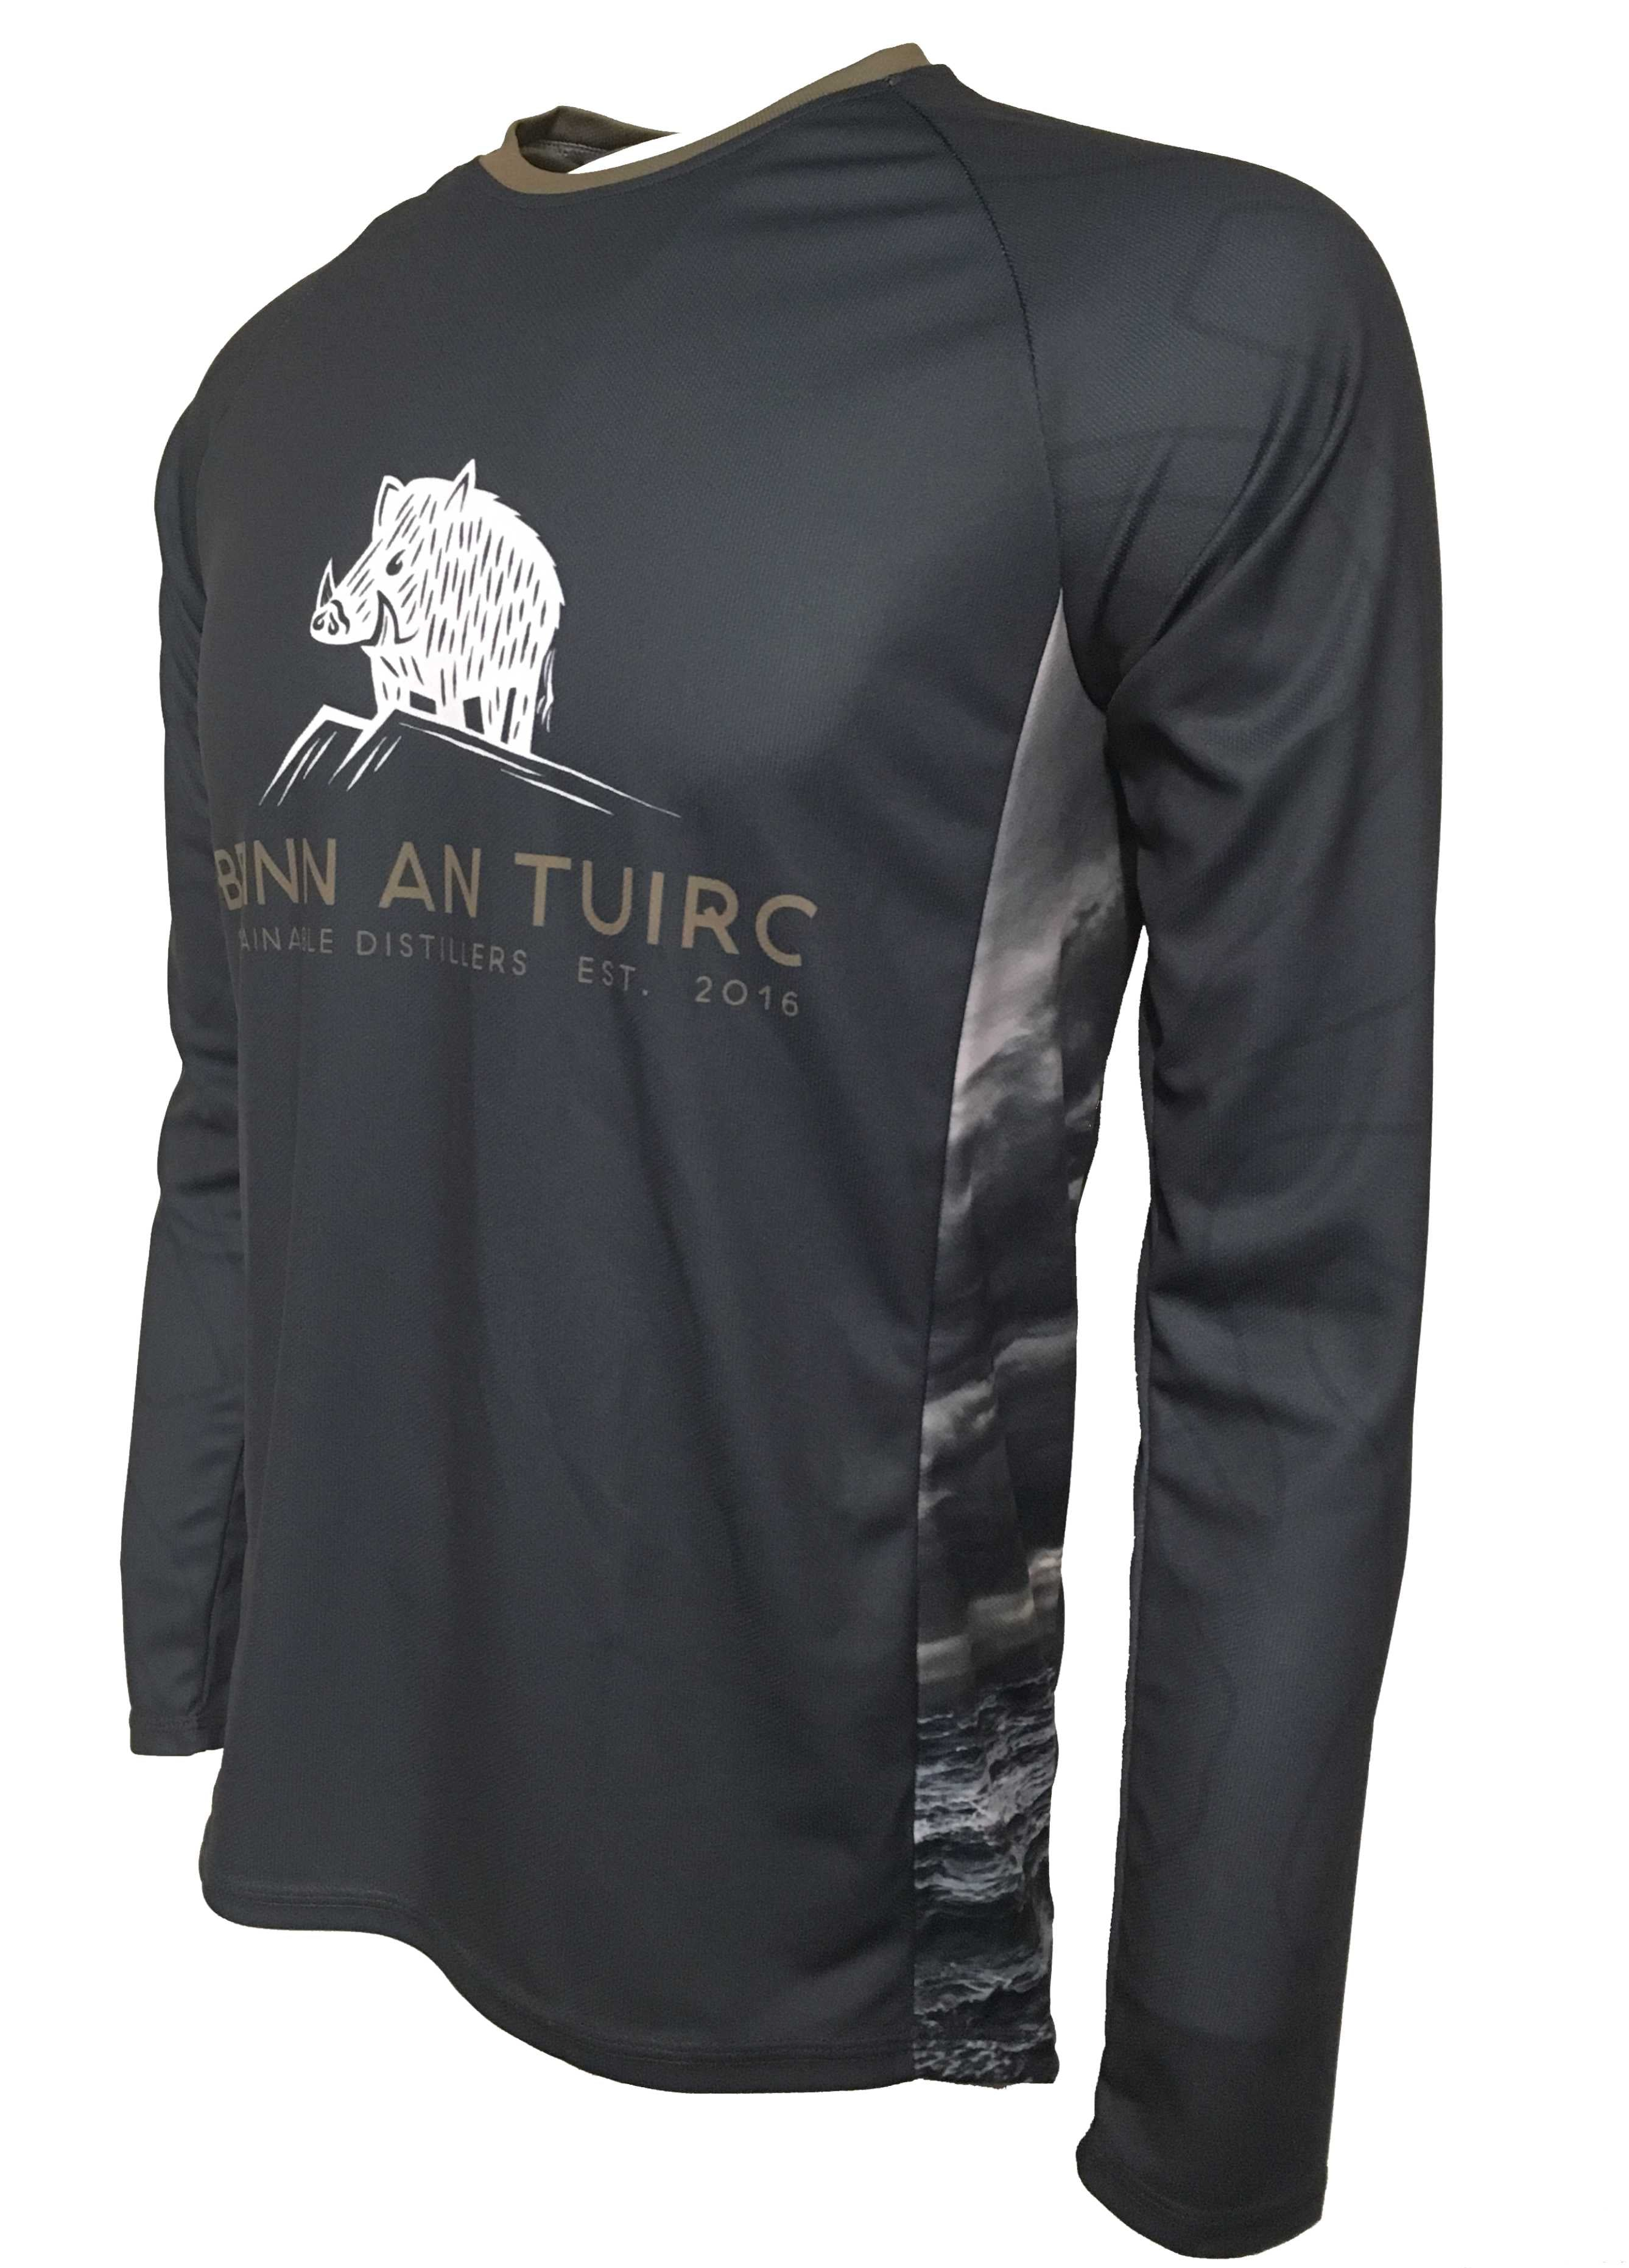 Kintyre Gin Enduro Cycling Jersey